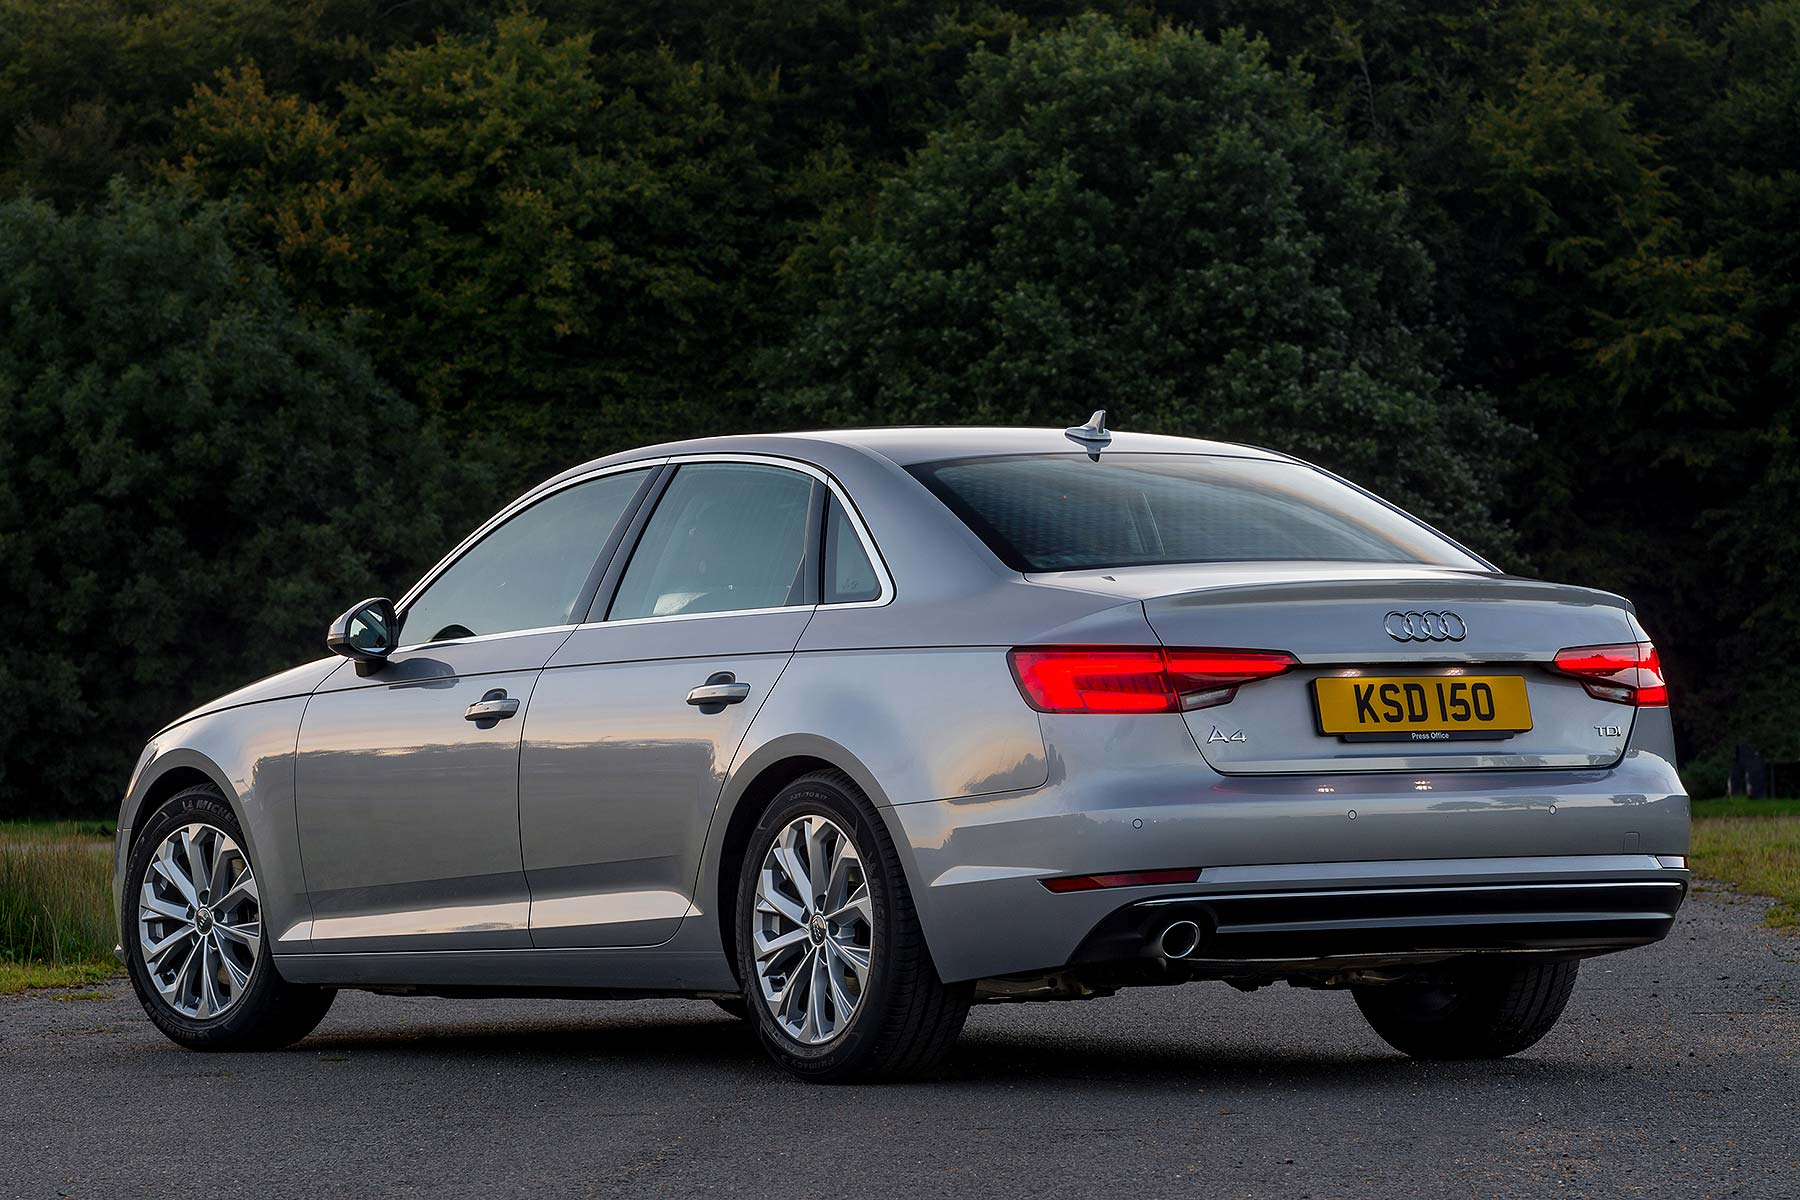 Audi A4 2.0 TDI 150 Ultra SE review: 2015 first drive